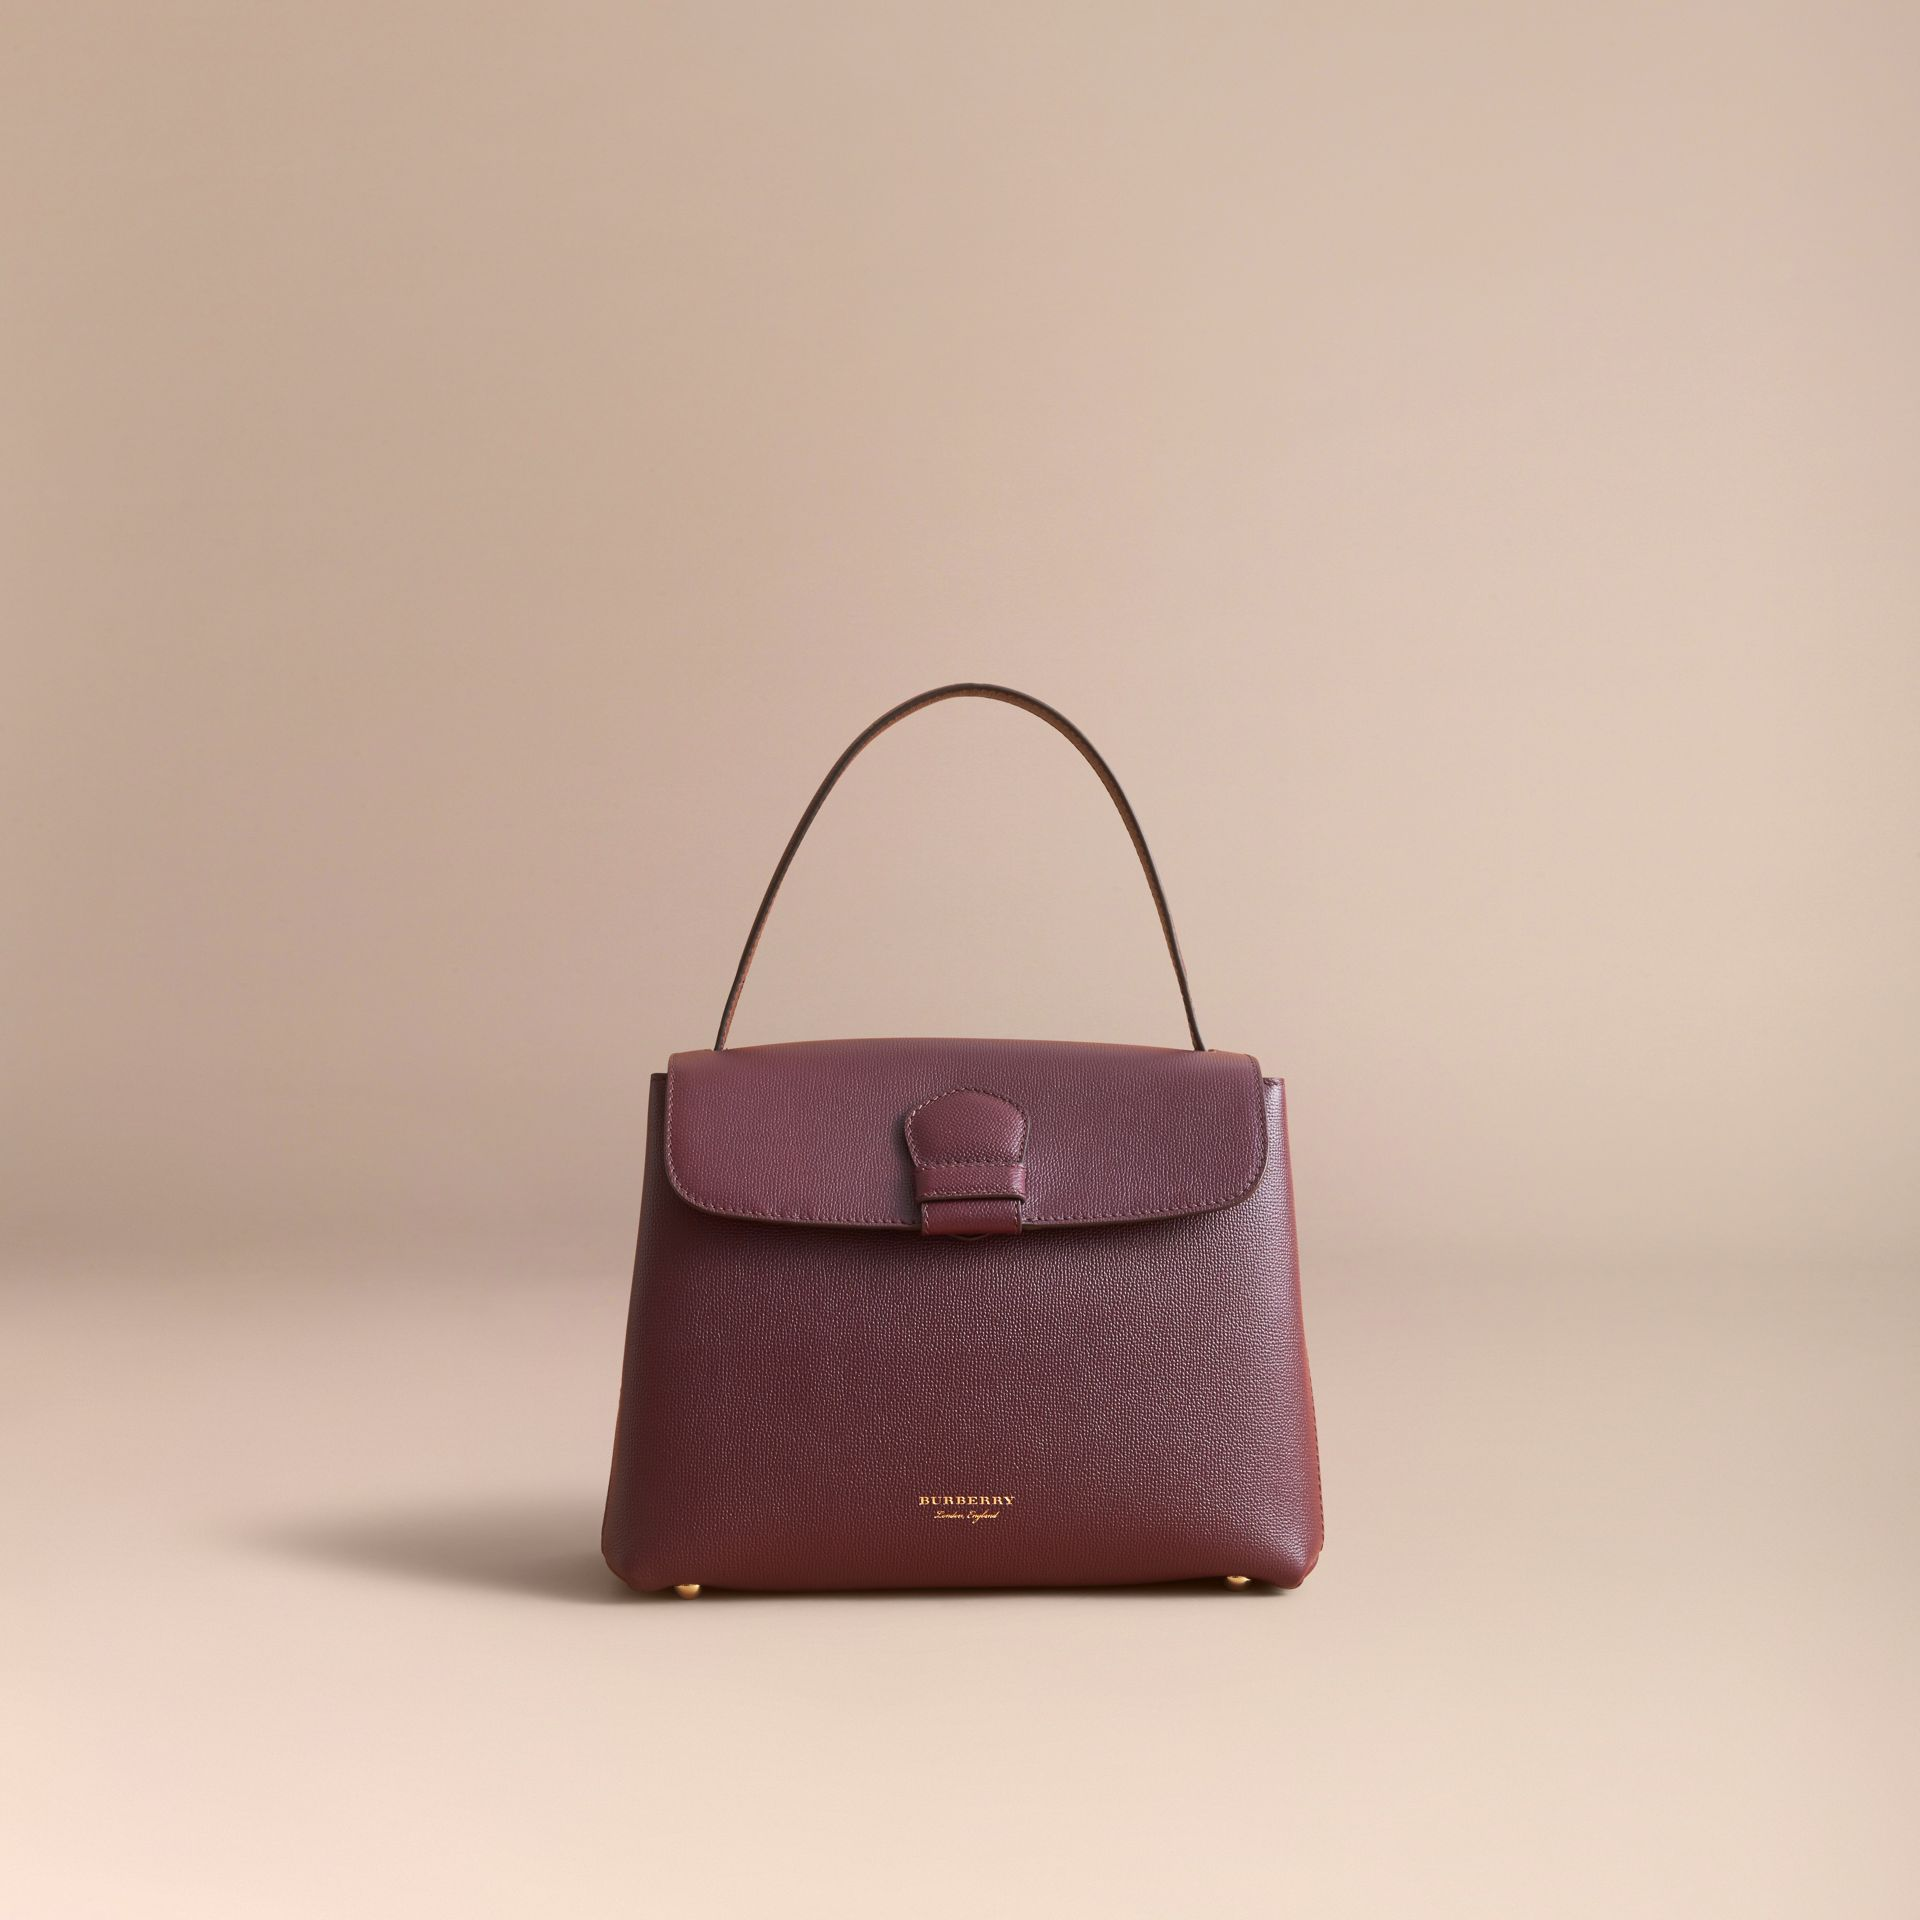 Medium Grainy Leather and House Check Tote Bag in Mahogany Red - Women | Burberry - gallery image 7